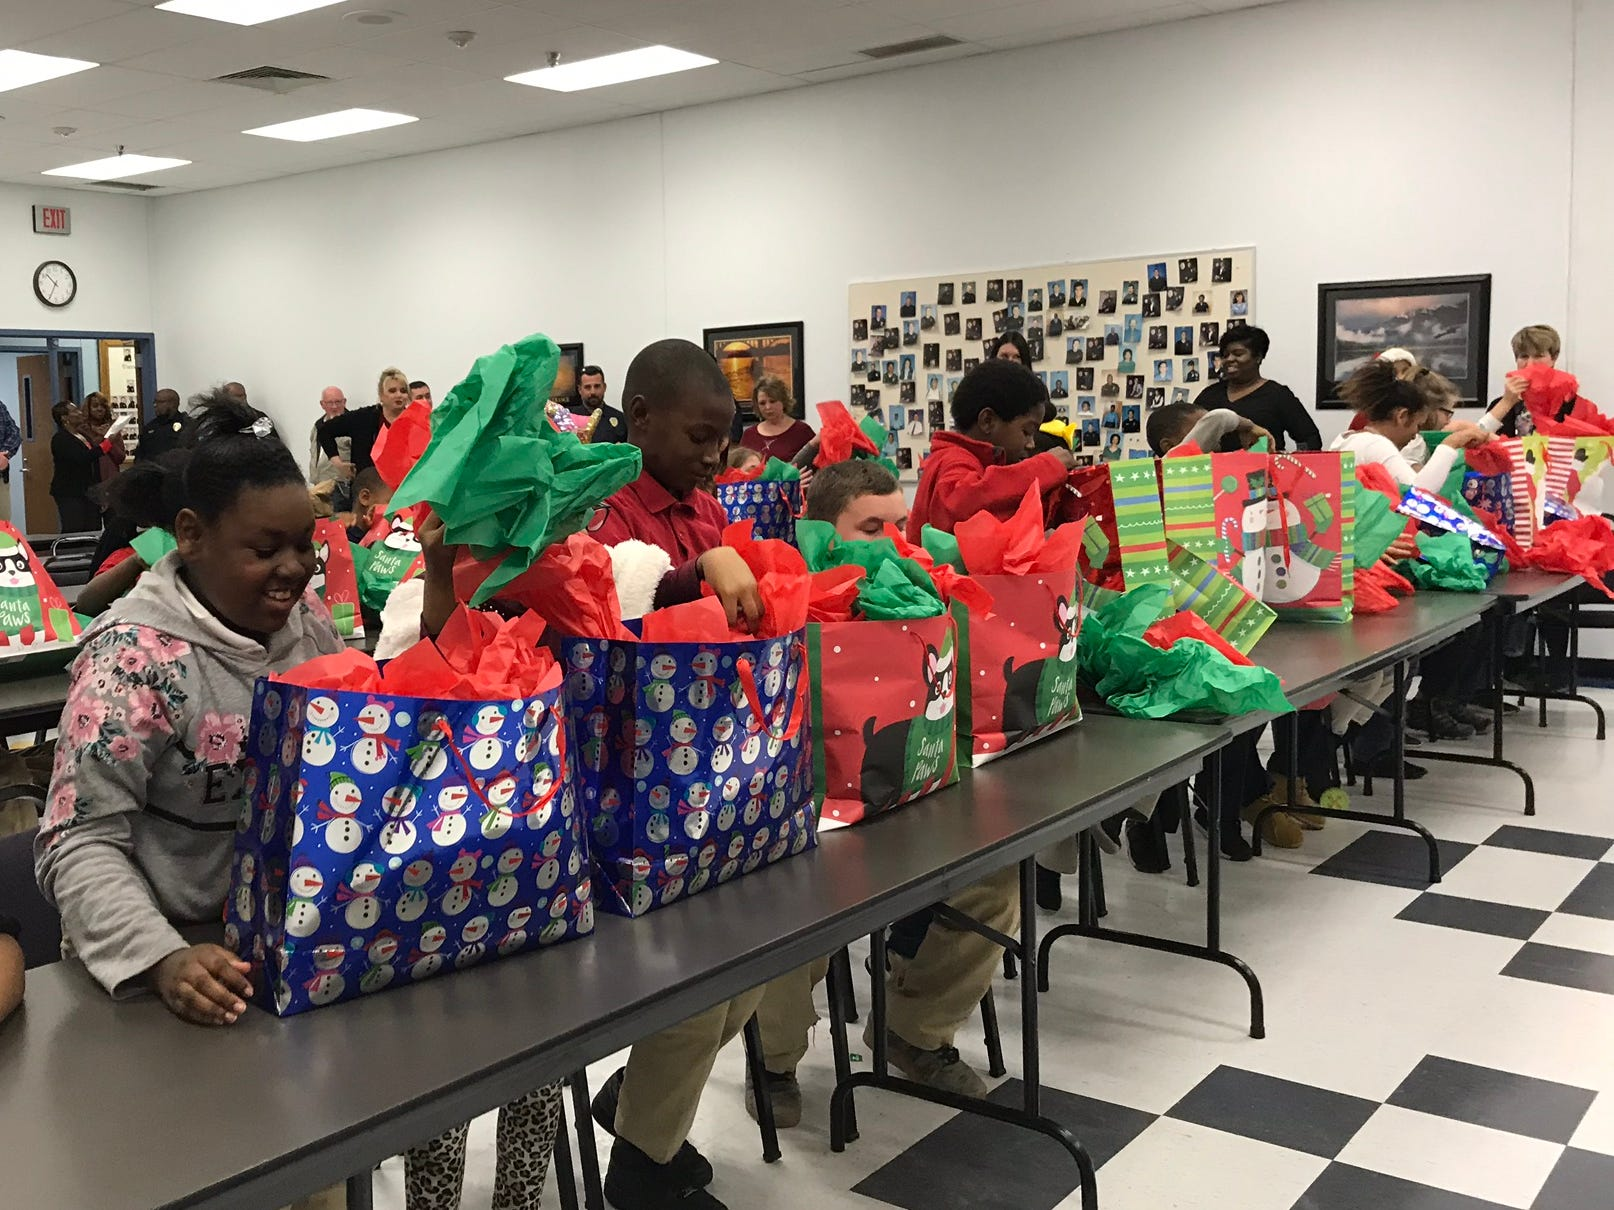 Students from Ouachita Parish Schools open presents of hats and coats at the Public Safety Center Wednesday. The items were provided through a partnership between the MPD, D.A. Steve Tew, T.P. outdoors and the Brad Bell insurance agency